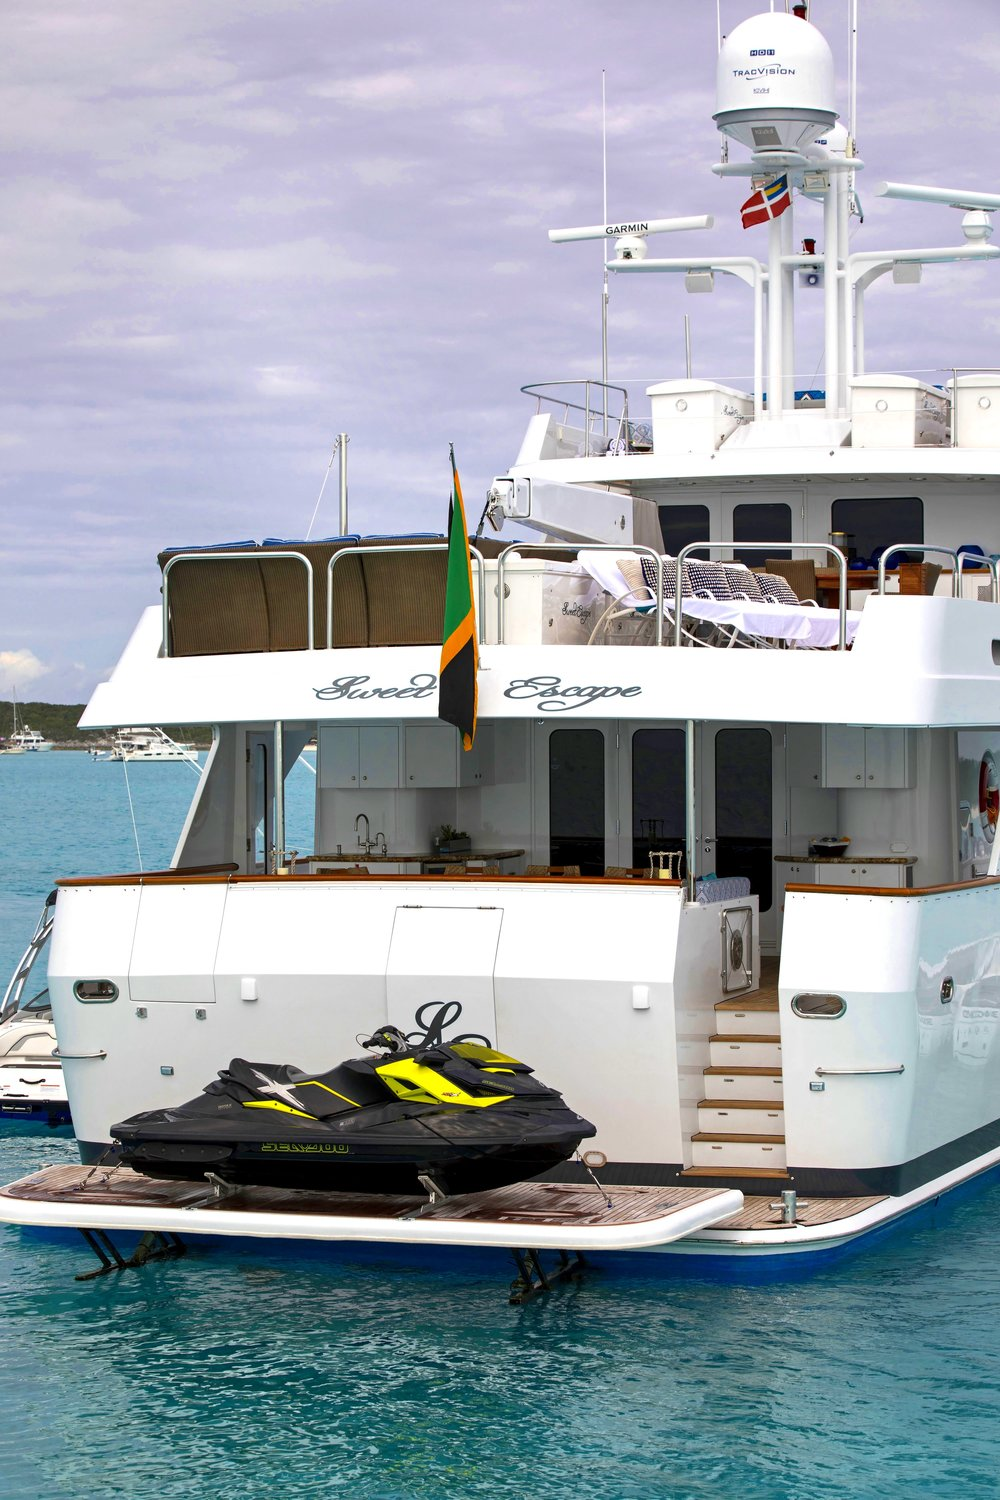 yacht-sweet-escape-hydraulic-swim-platform-luxury-charter-bahamas-bvi